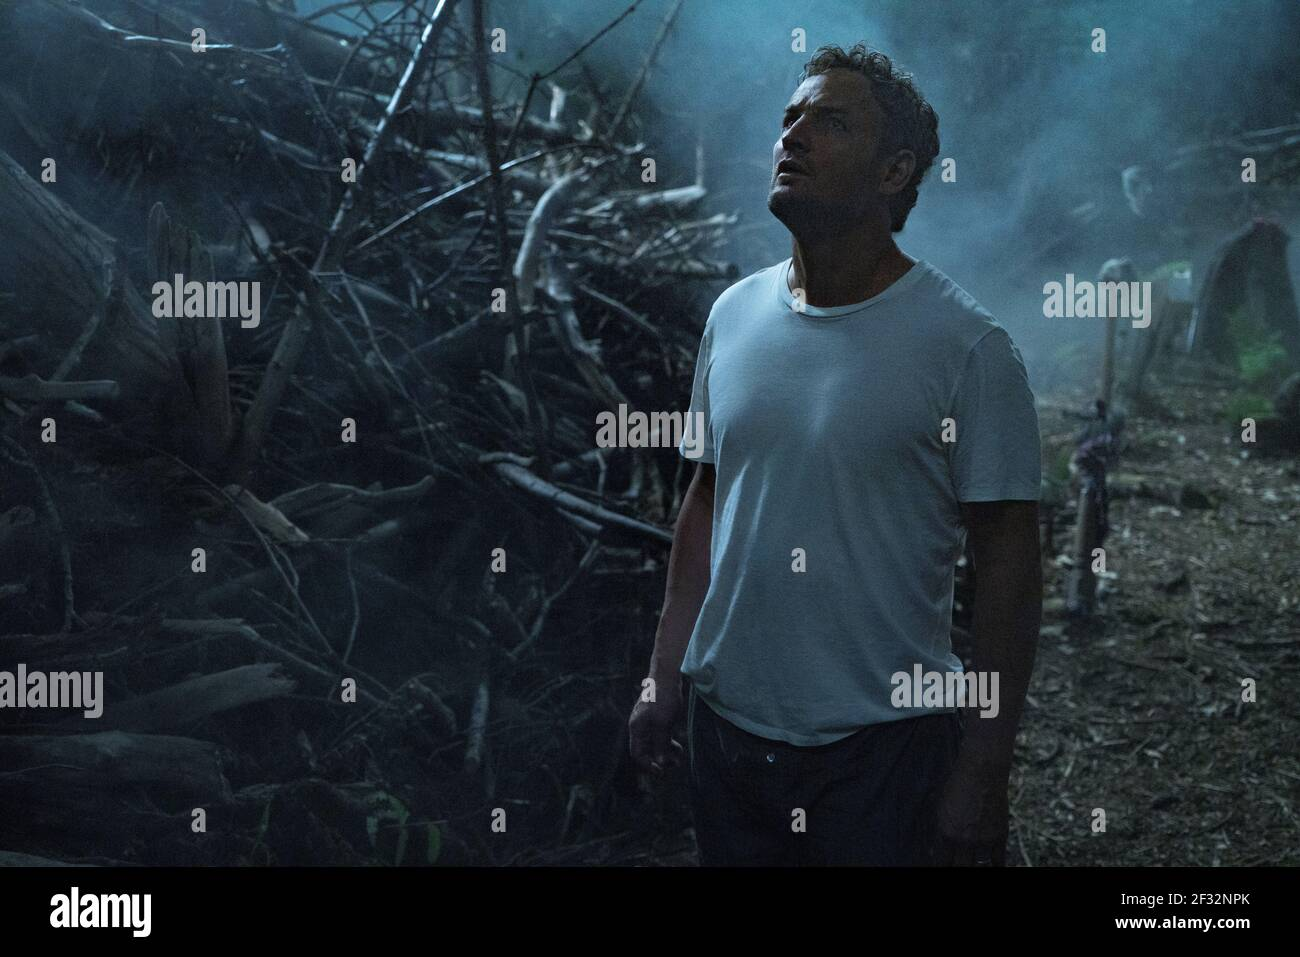 JASON CLARKE, PET SEMATARY, 2019, ©KERRY HAYES/PARAMOUNT Banque D'Images